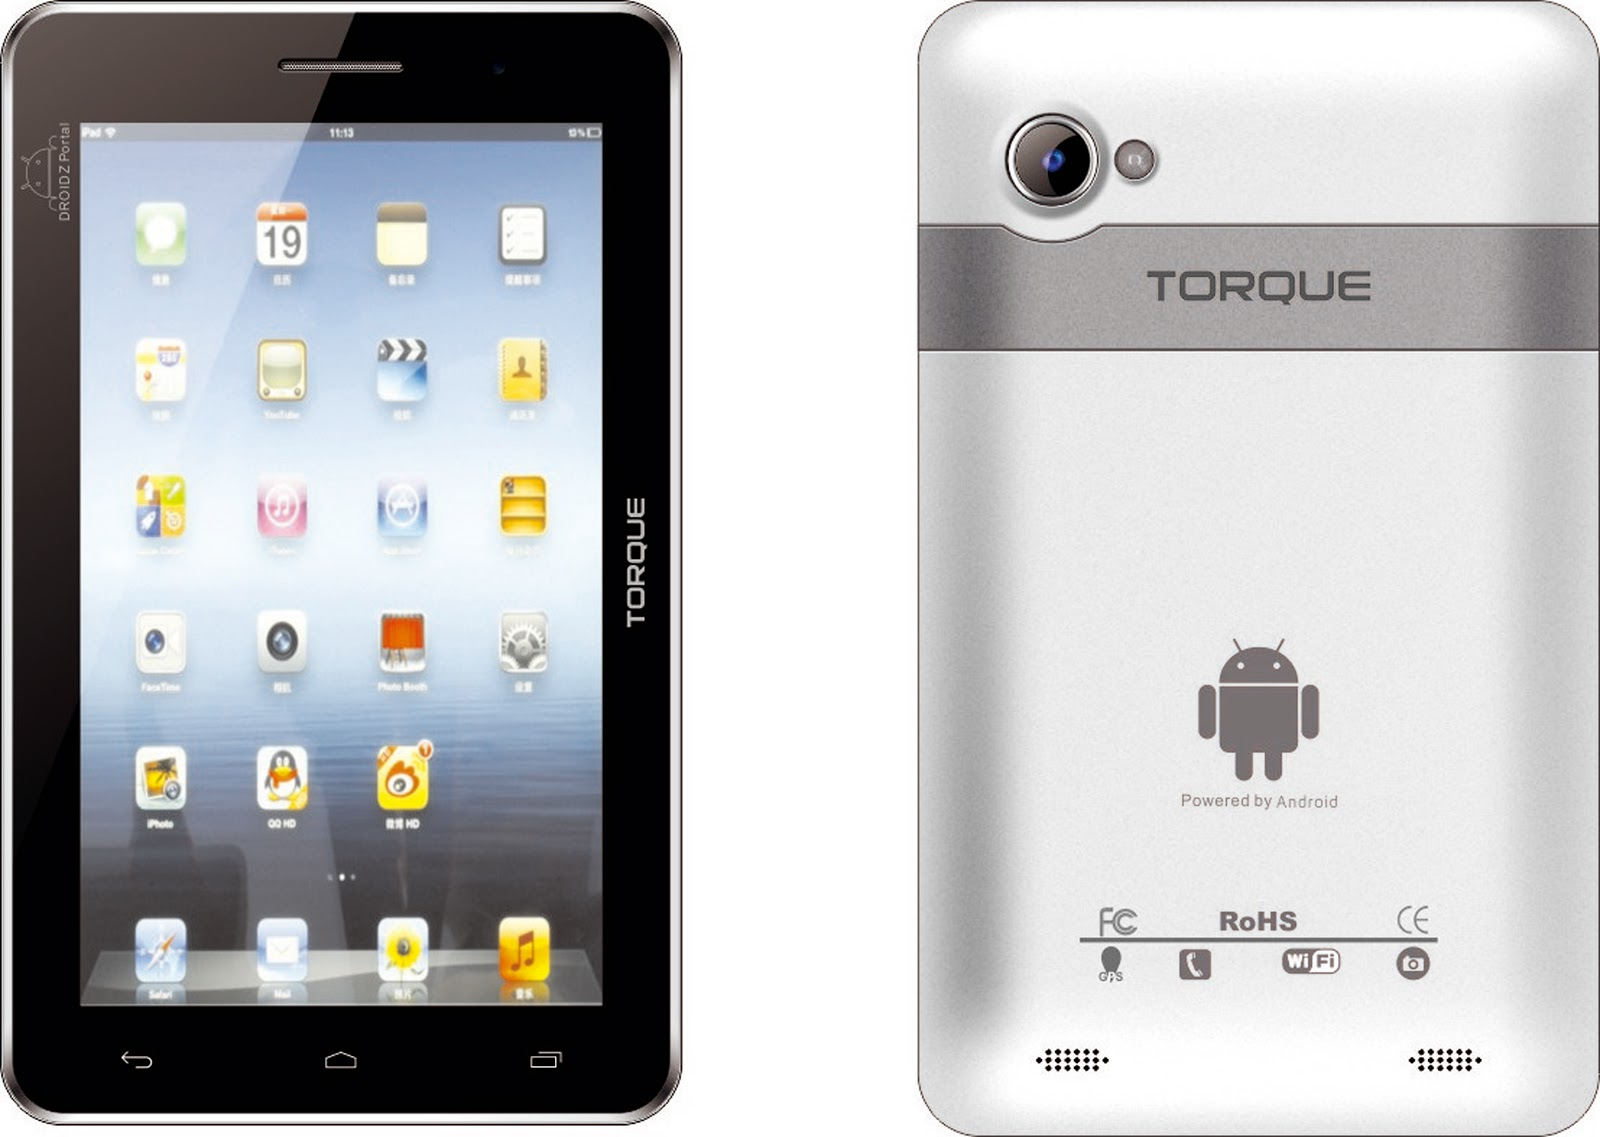 Torque Mobile Phones and Tablets Offers the Best of